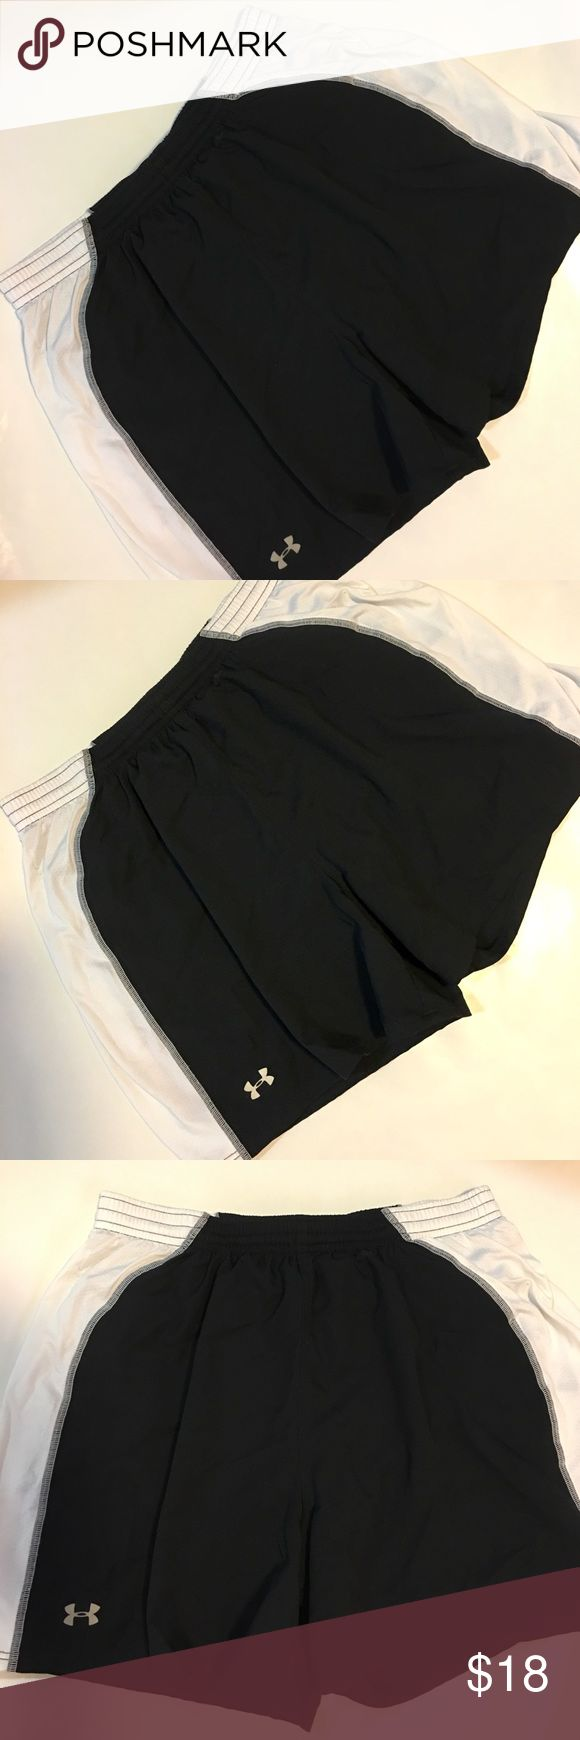 Under Armor- Ladies Black/White Workout Shorts Under Armor brand ladies black-and-white workout shorts, size SM. In great preowned condition. Please be sure to check out all of my other boutique items to bundle and save. Same day or next business day shipping is guaranteed. Reasonable offers will be considered! Under Armour Shorts